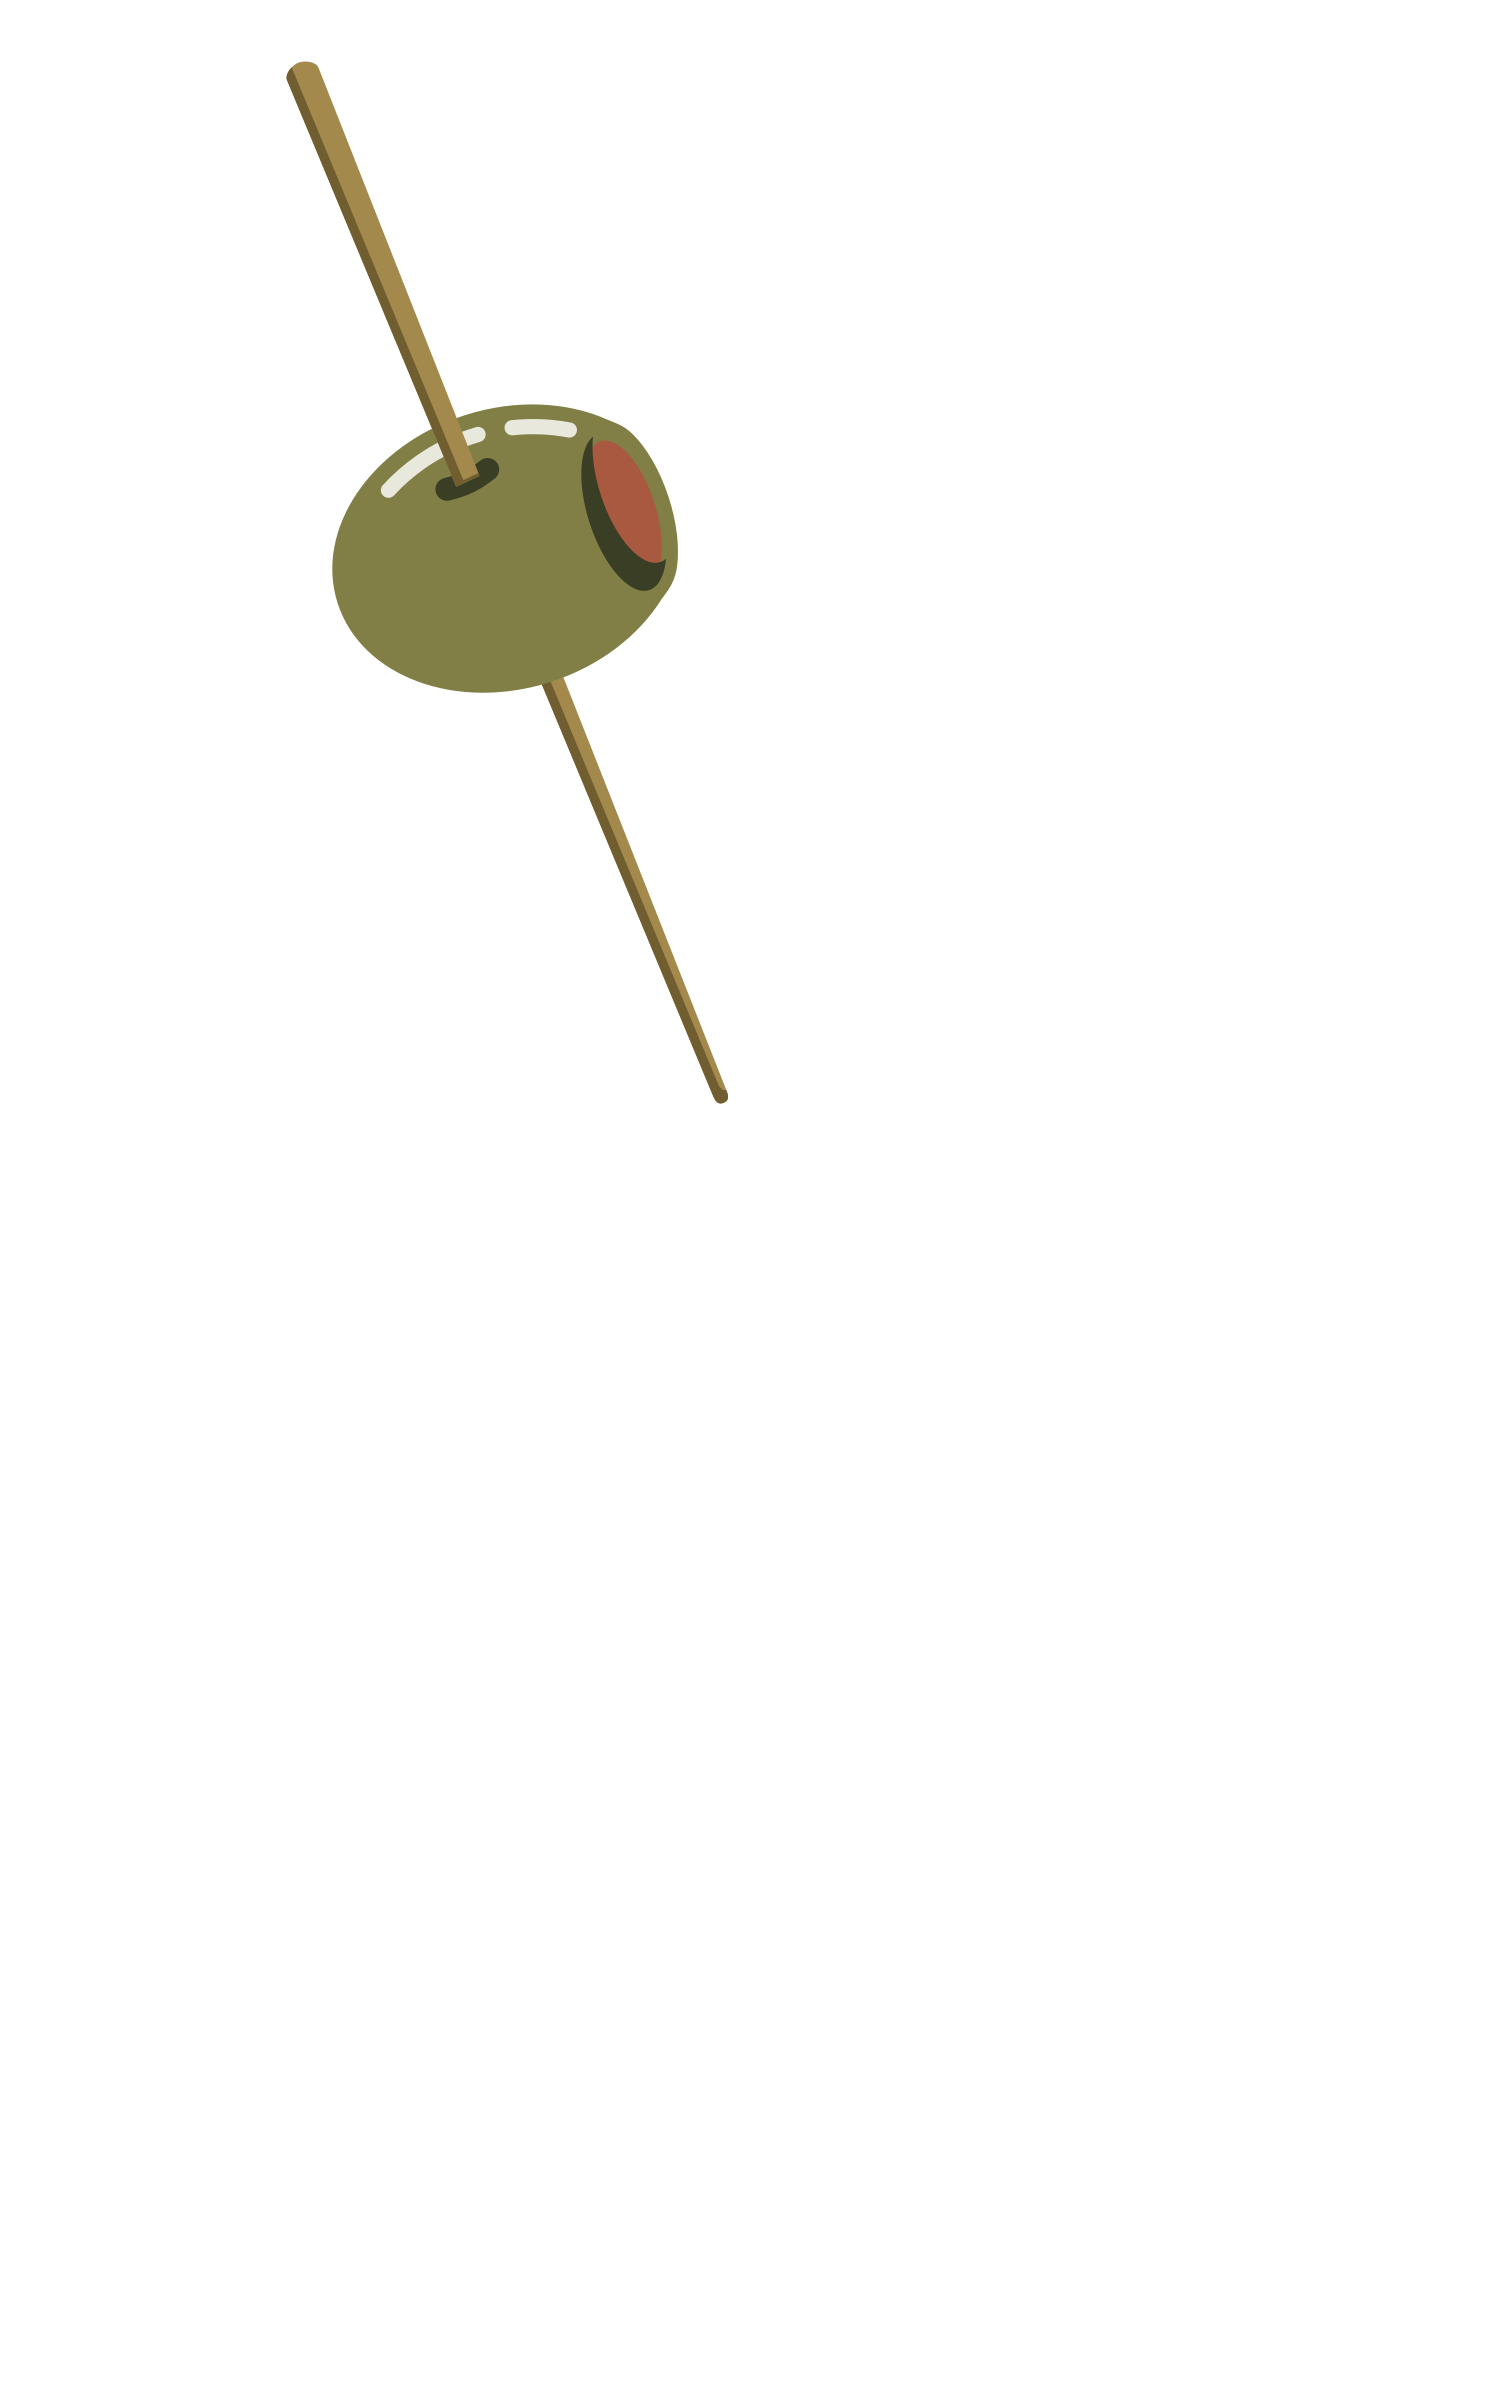 On a toothpick icons. Olive clipart vector